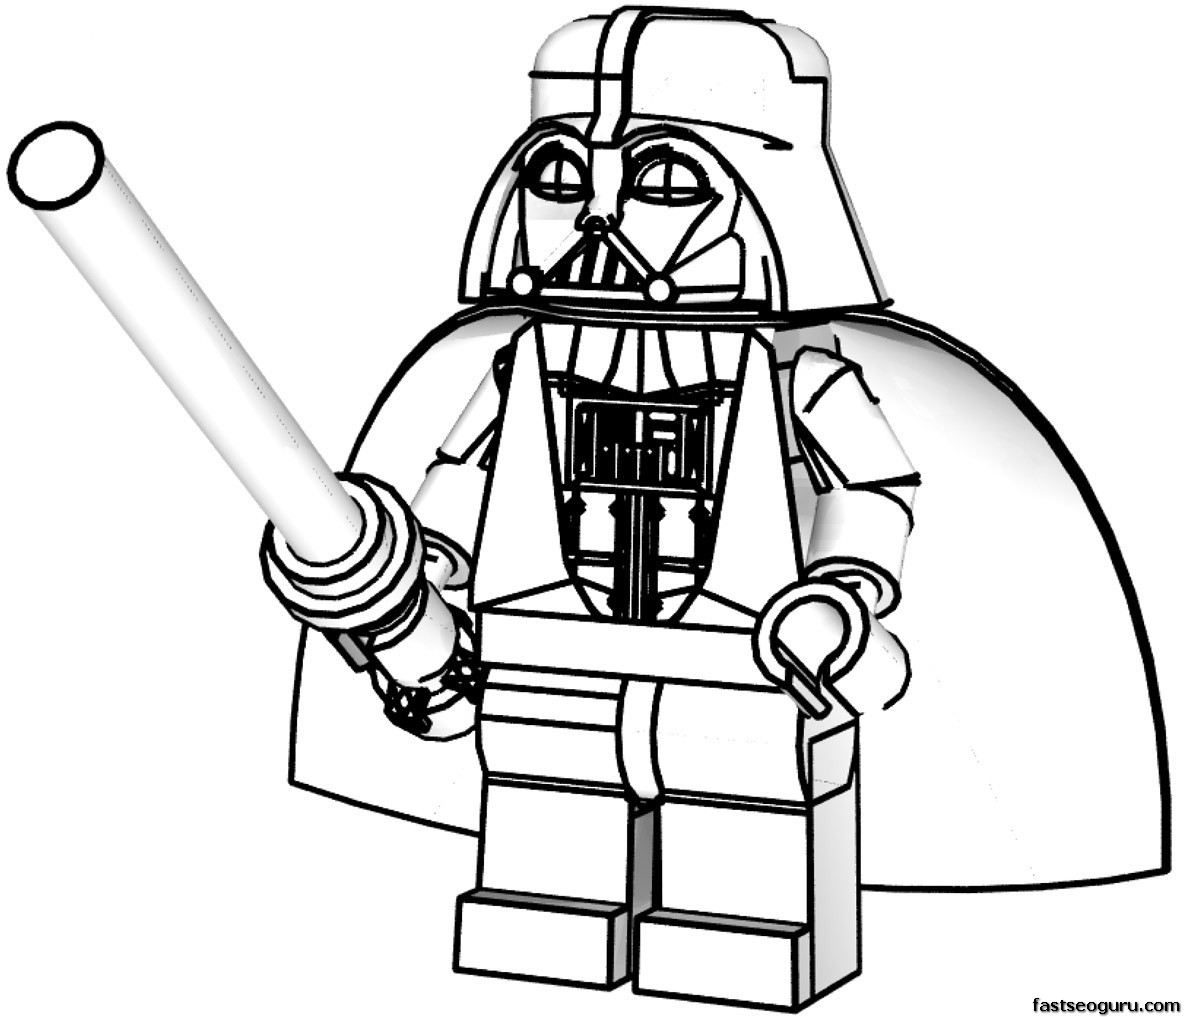 lego star wars pictures to print lego stormtrooper coloring pages at getcoloringscom wars print to star pictures lego